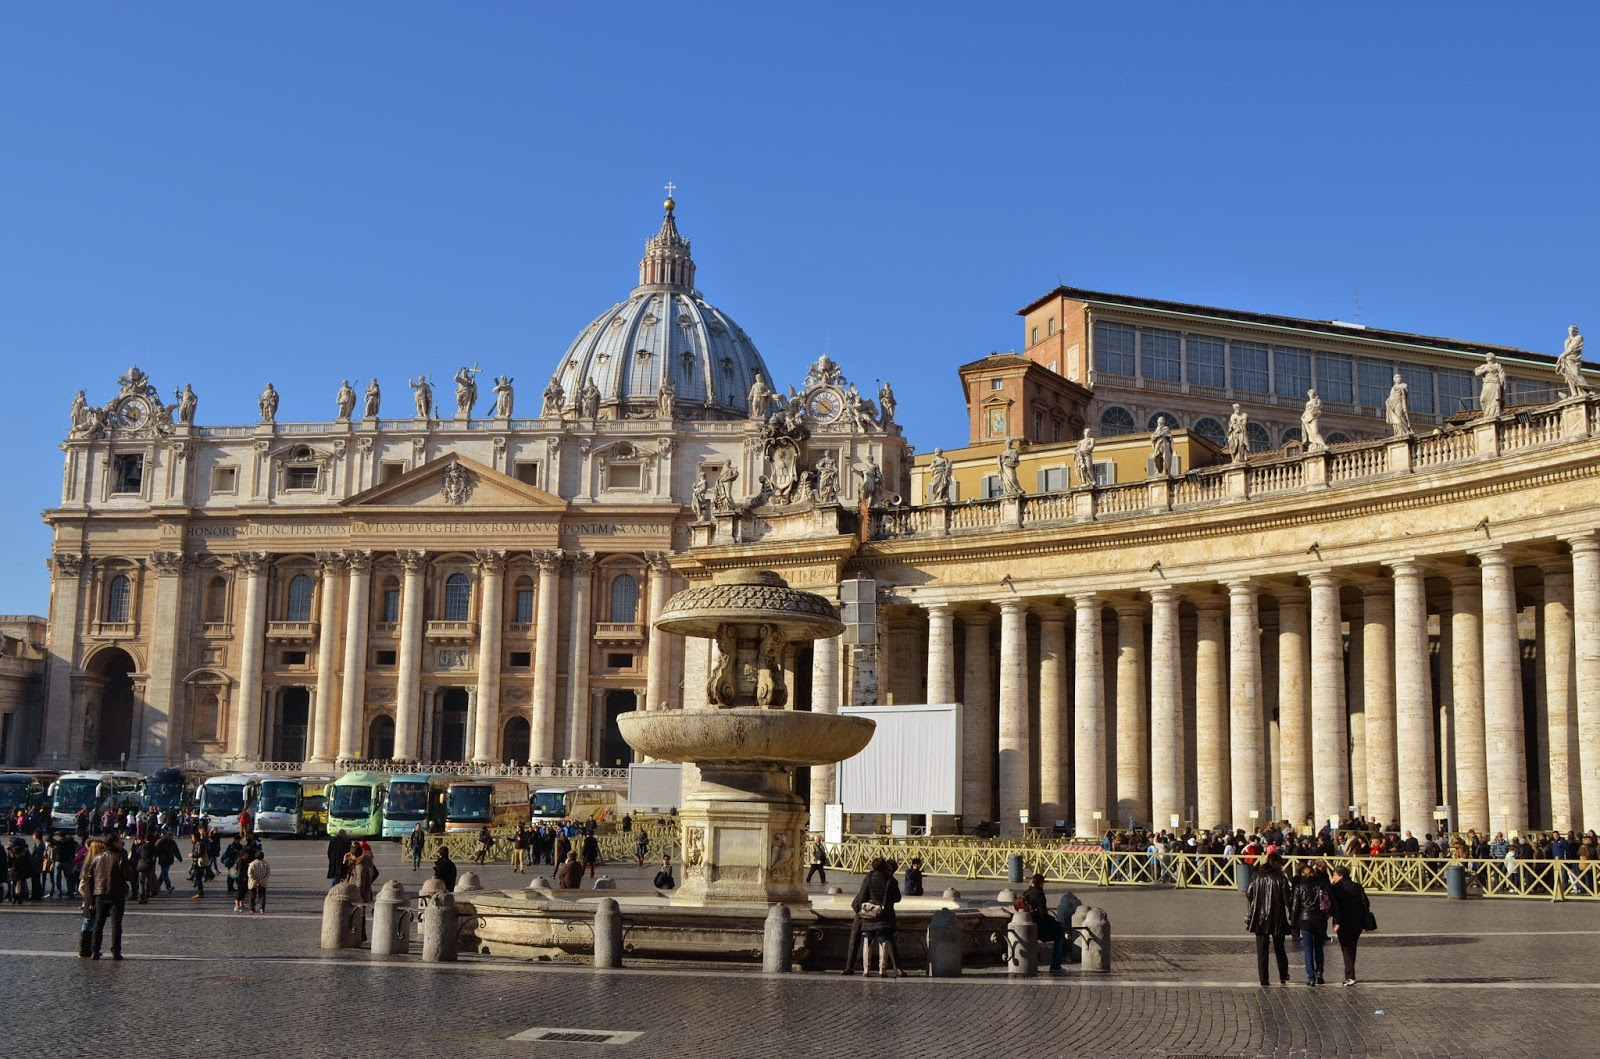 ROME & VATICAN CITY BREAK Part One